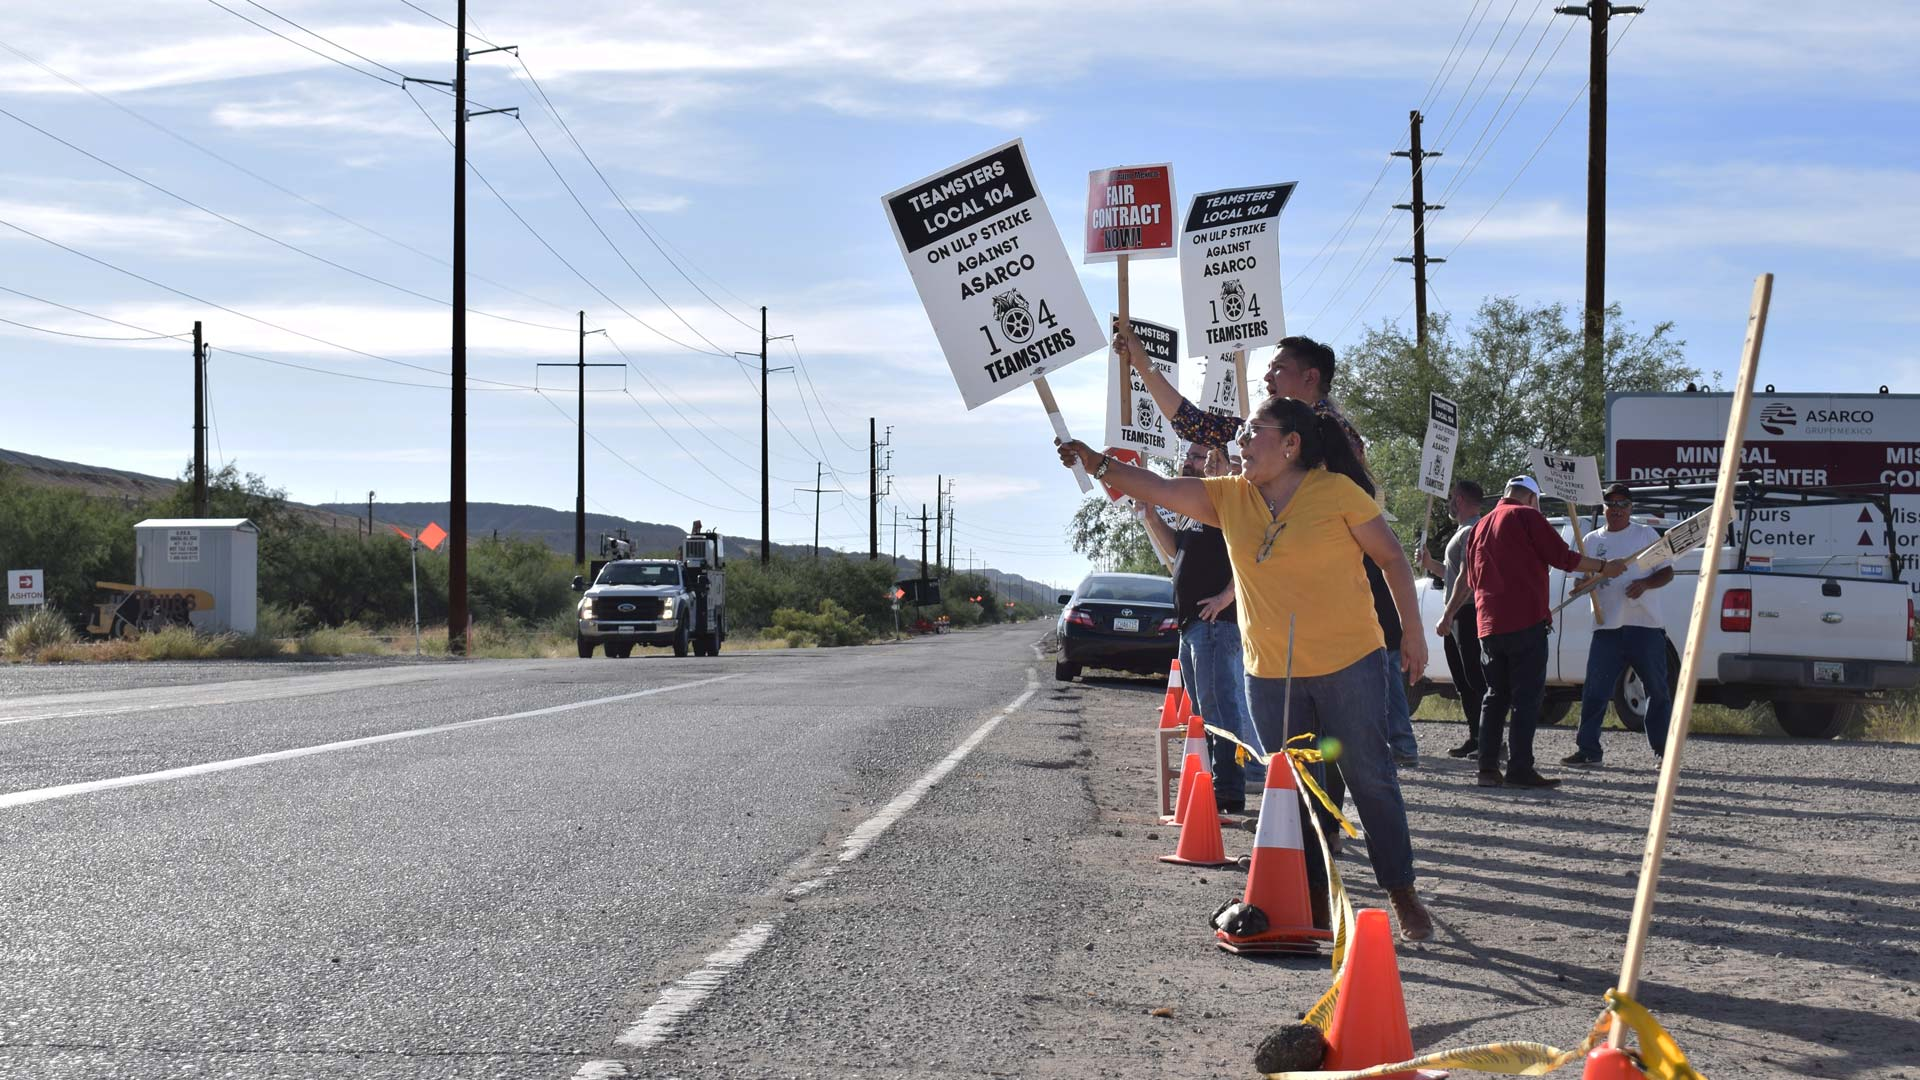 asarco picket line